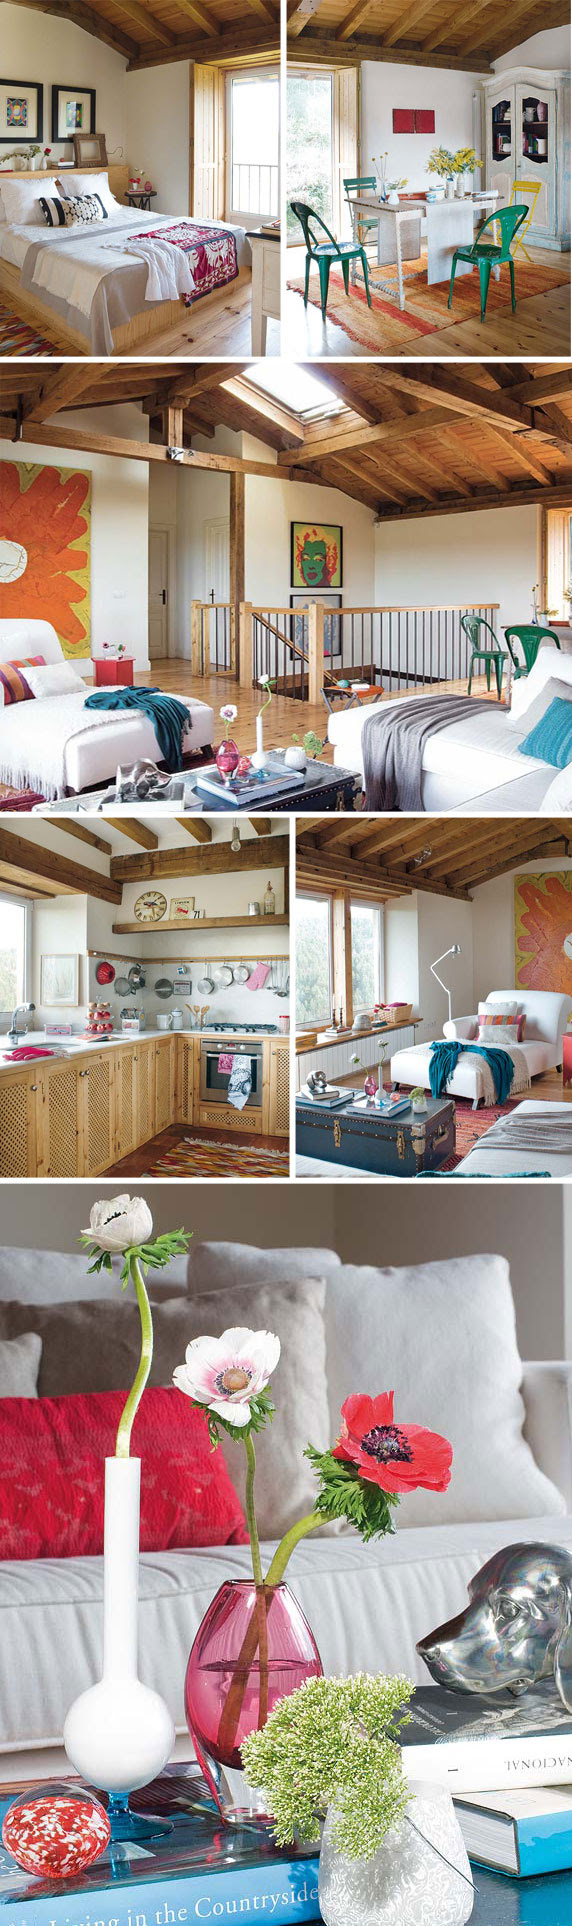 Summer Cottage Decorating Ideas: colors and wood | Modern Interiors